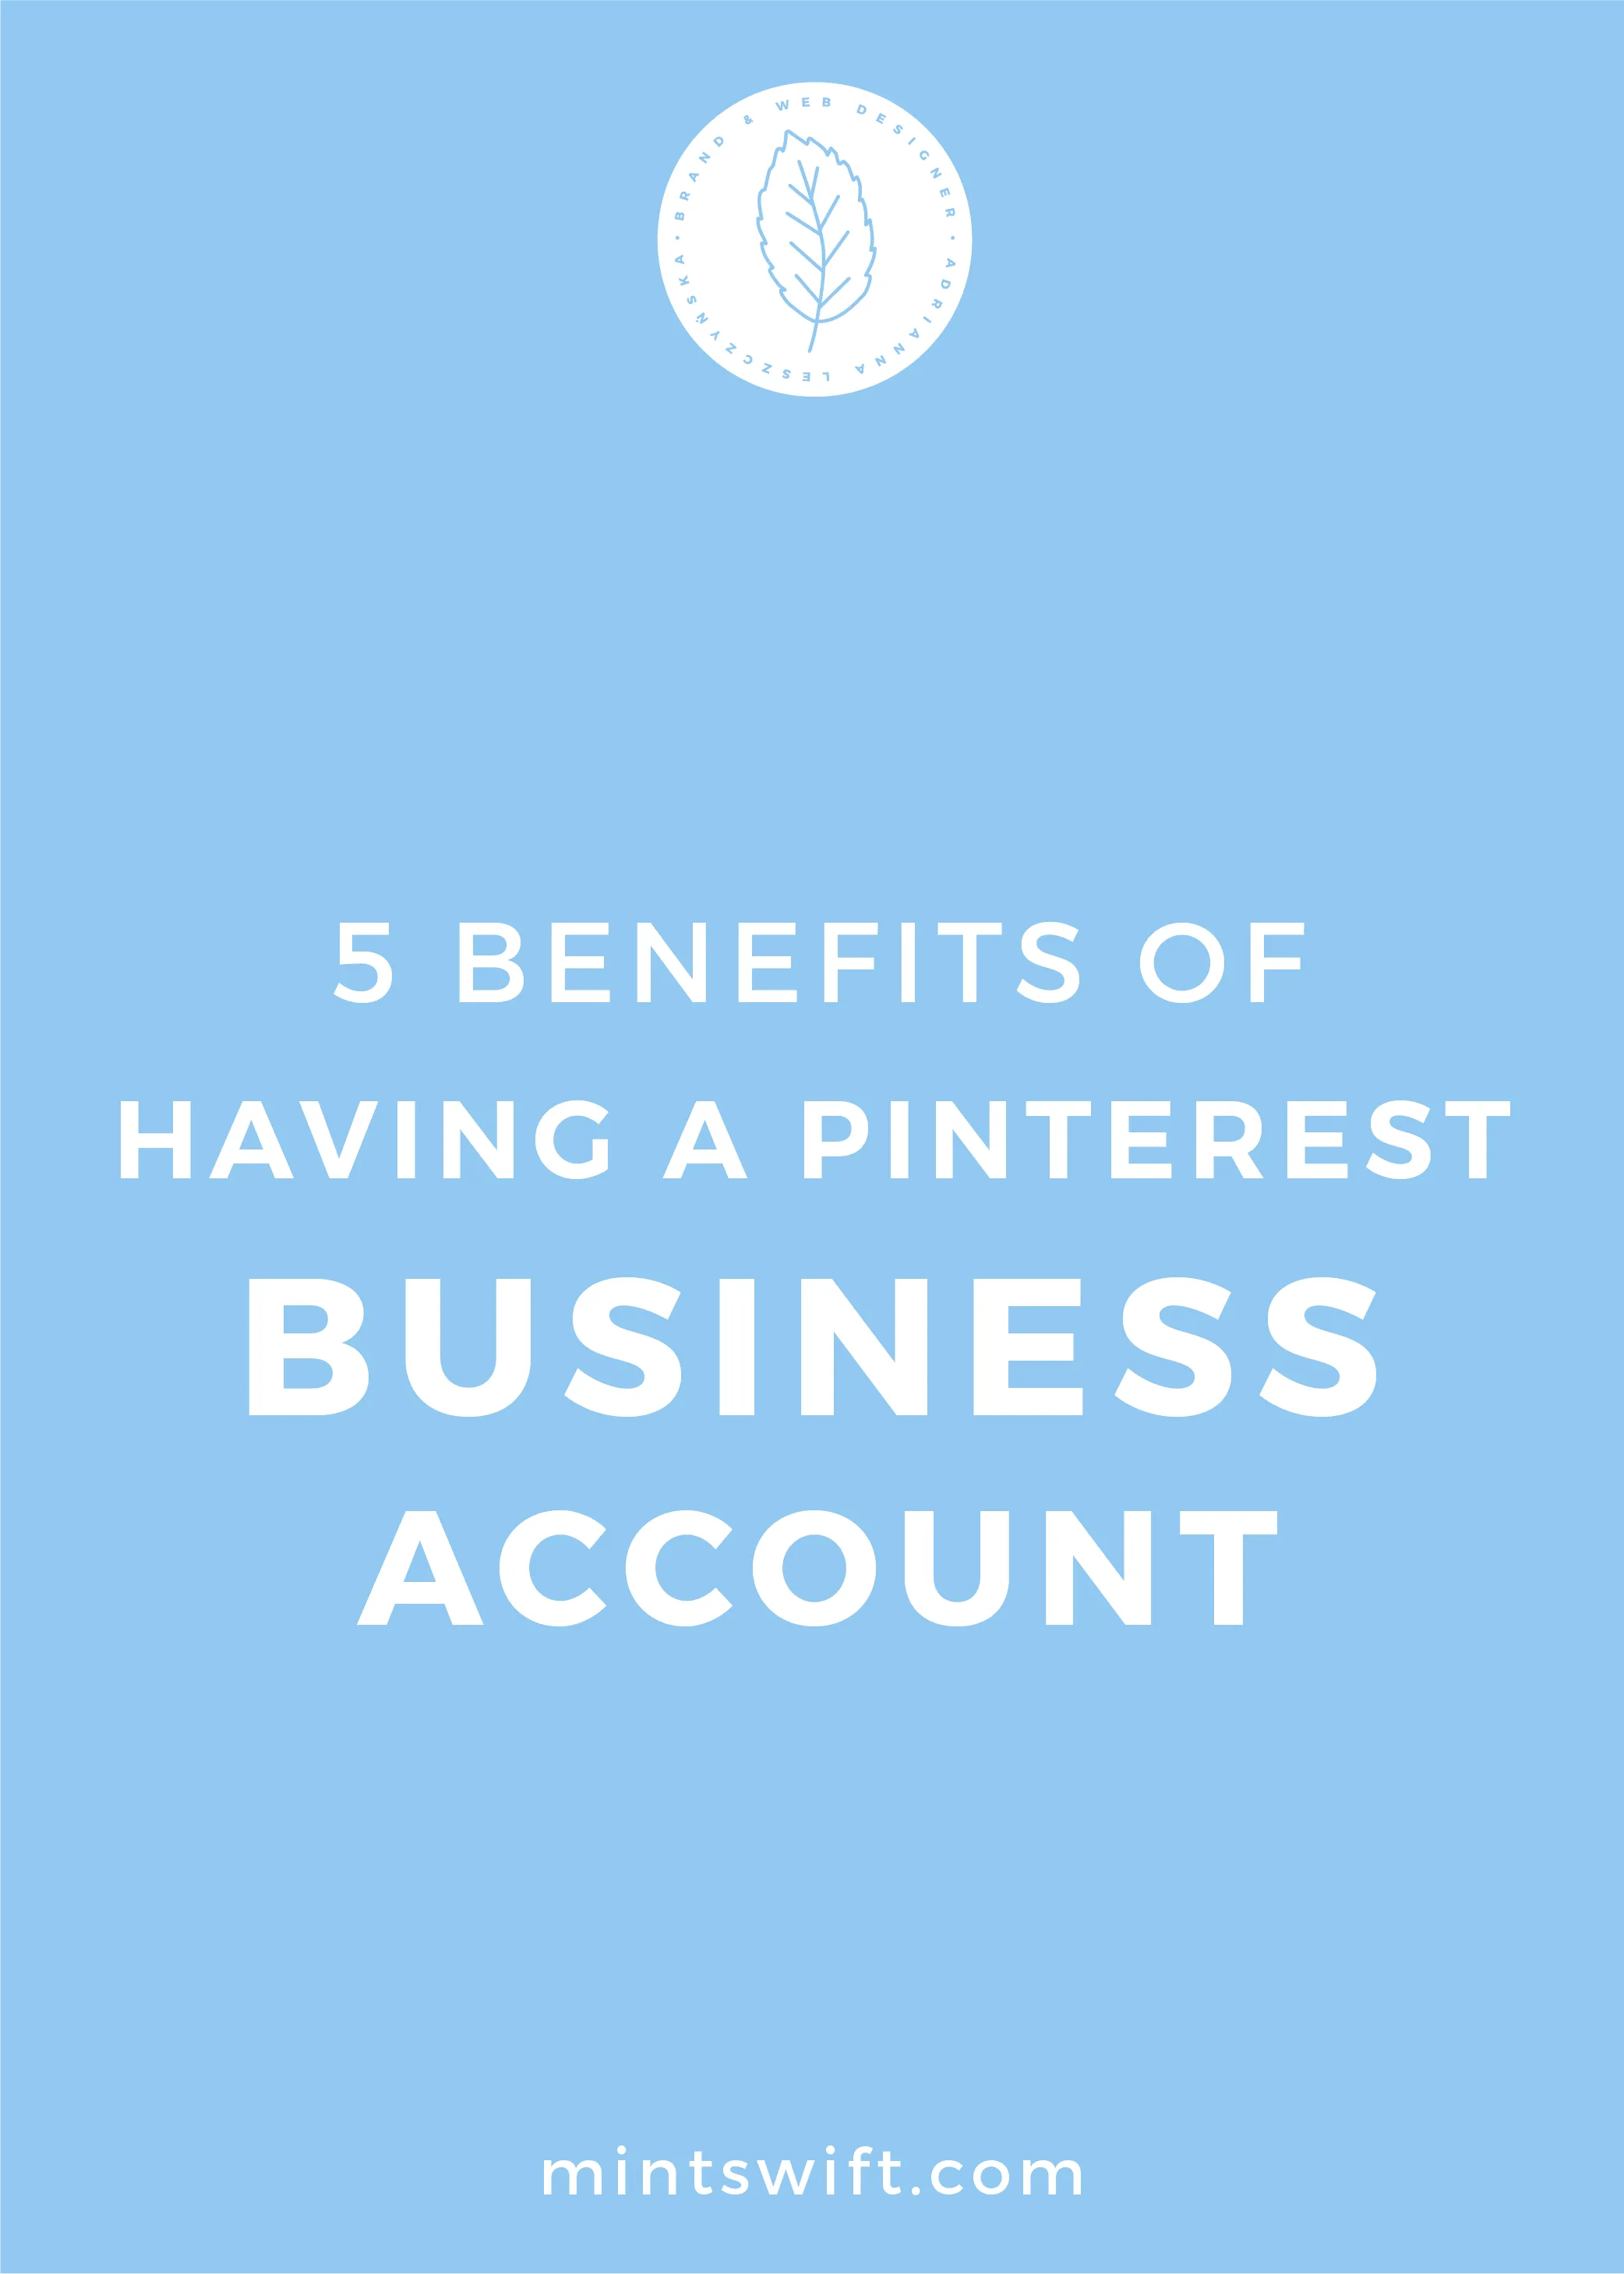 5 Benefits of Having a Pinterest Business Account - MintSwift